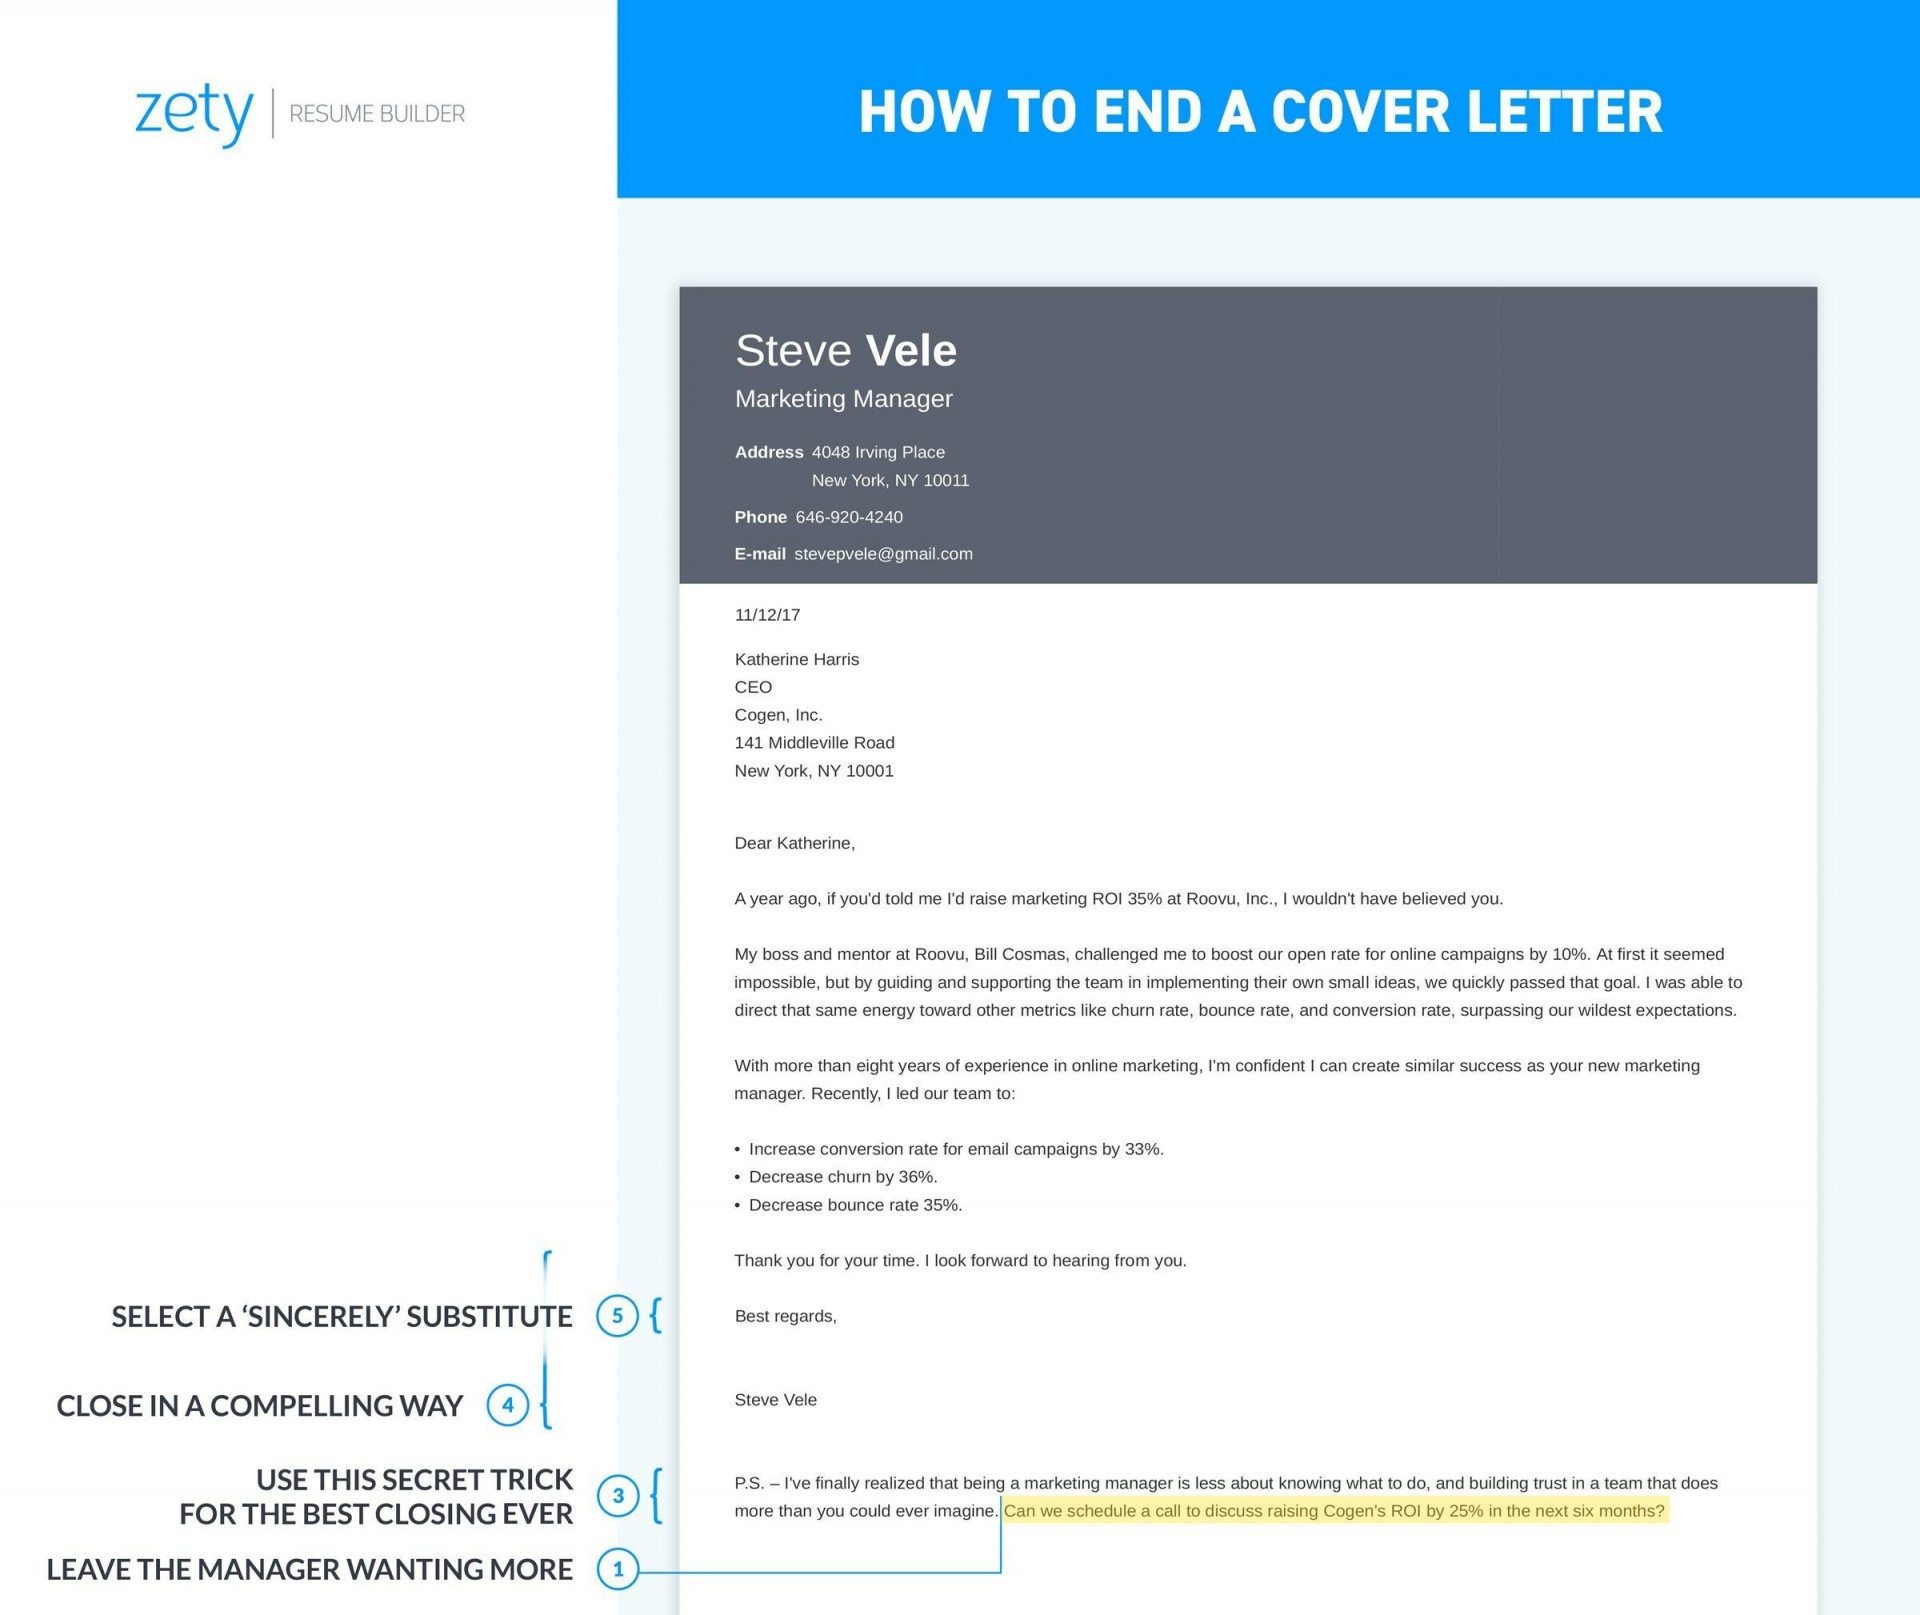 006 Rare Email Cover Letter Sample Picture  Samples Resume Example Of For Job Internship1920